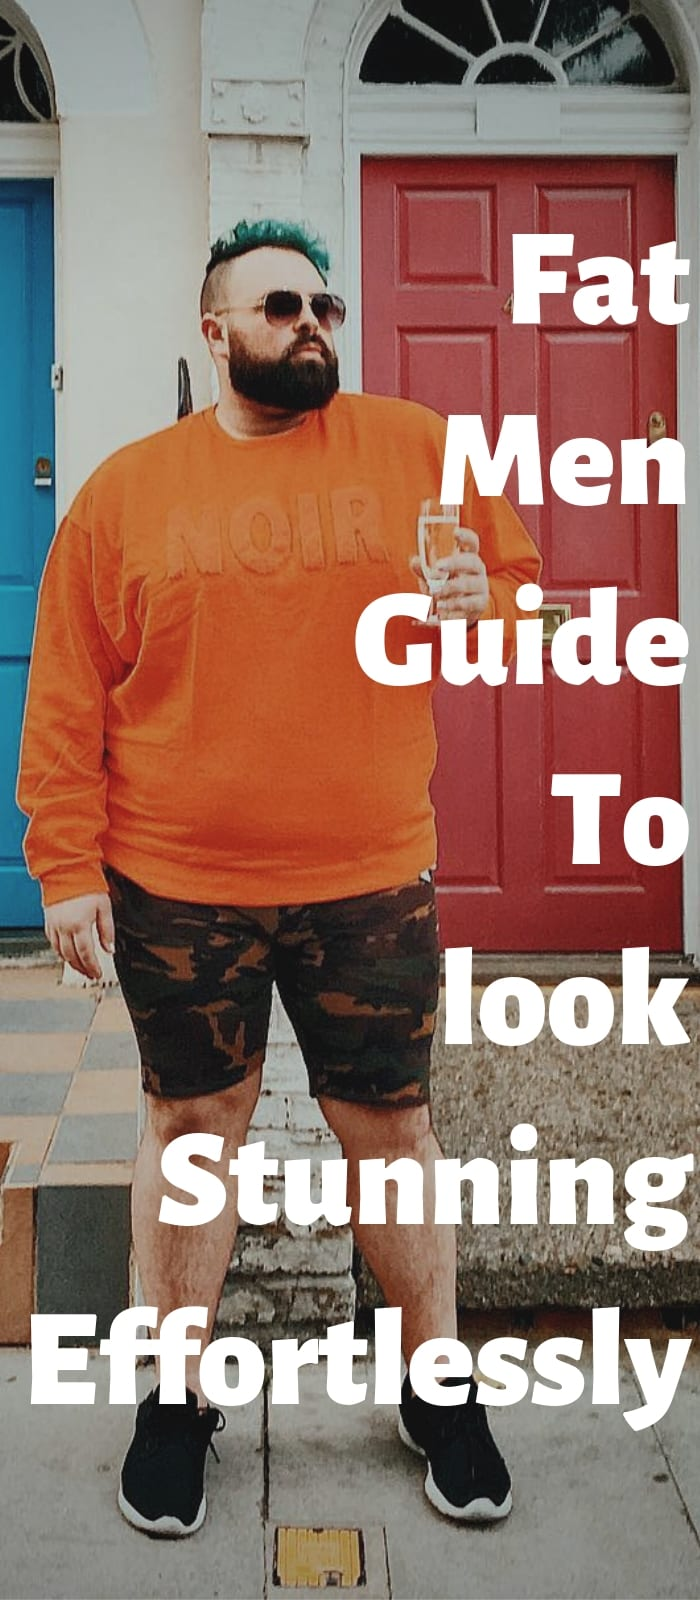 Fat Men Guide To look Stunning Effortlessly!